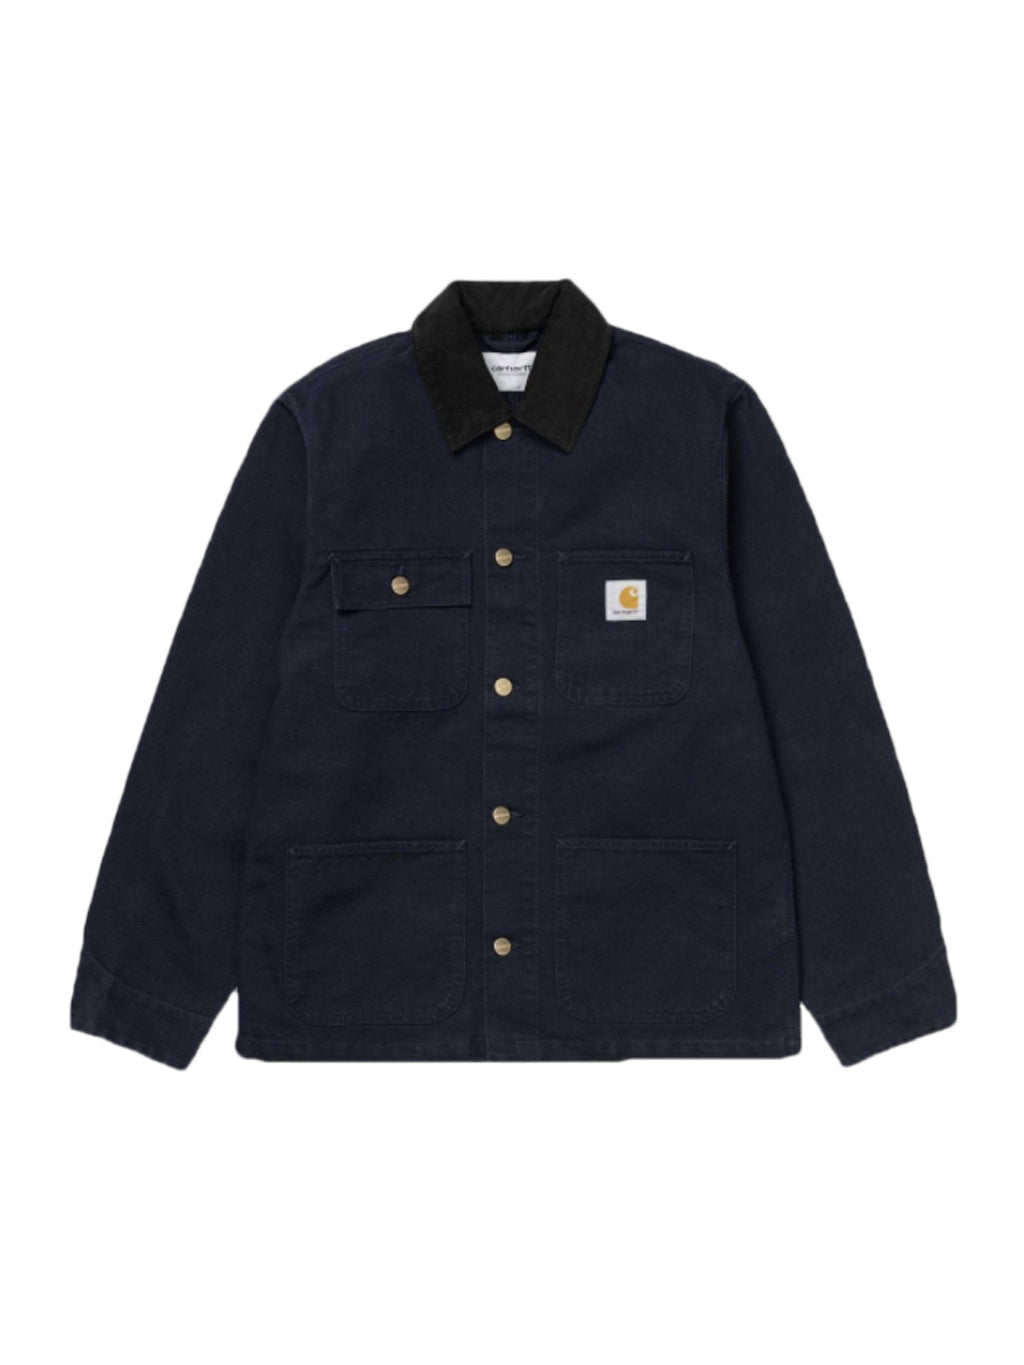 Navy Michigan Coat Jacket